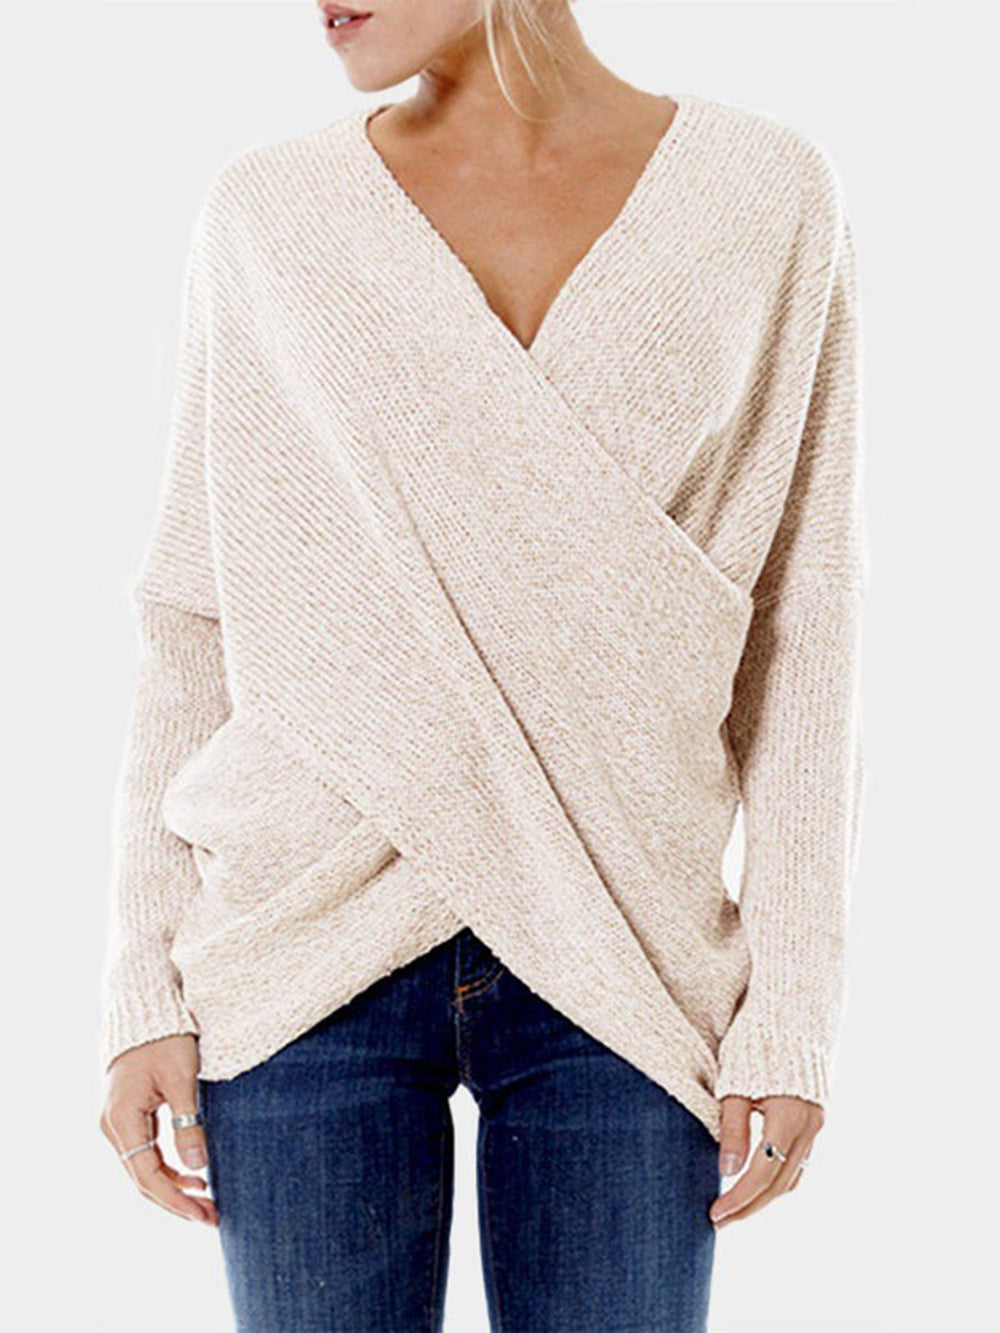 Asymmetrical Sexy V neck Long Sleeve Knitwear Sweater